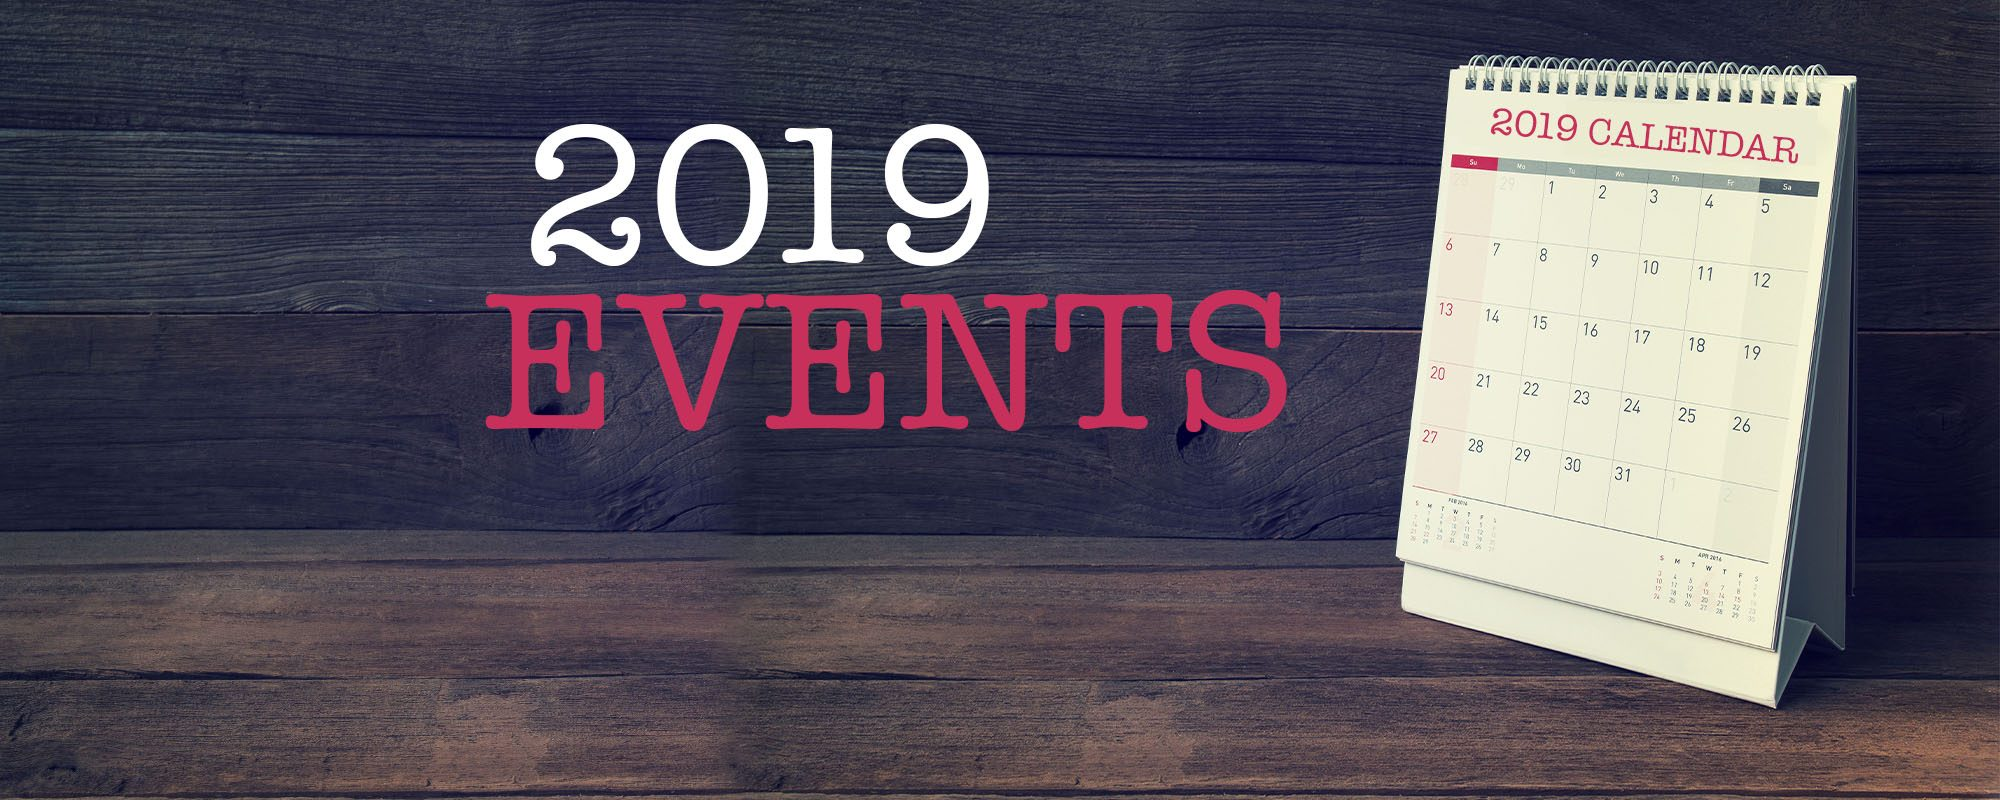 CALENDER2019 EVENTS